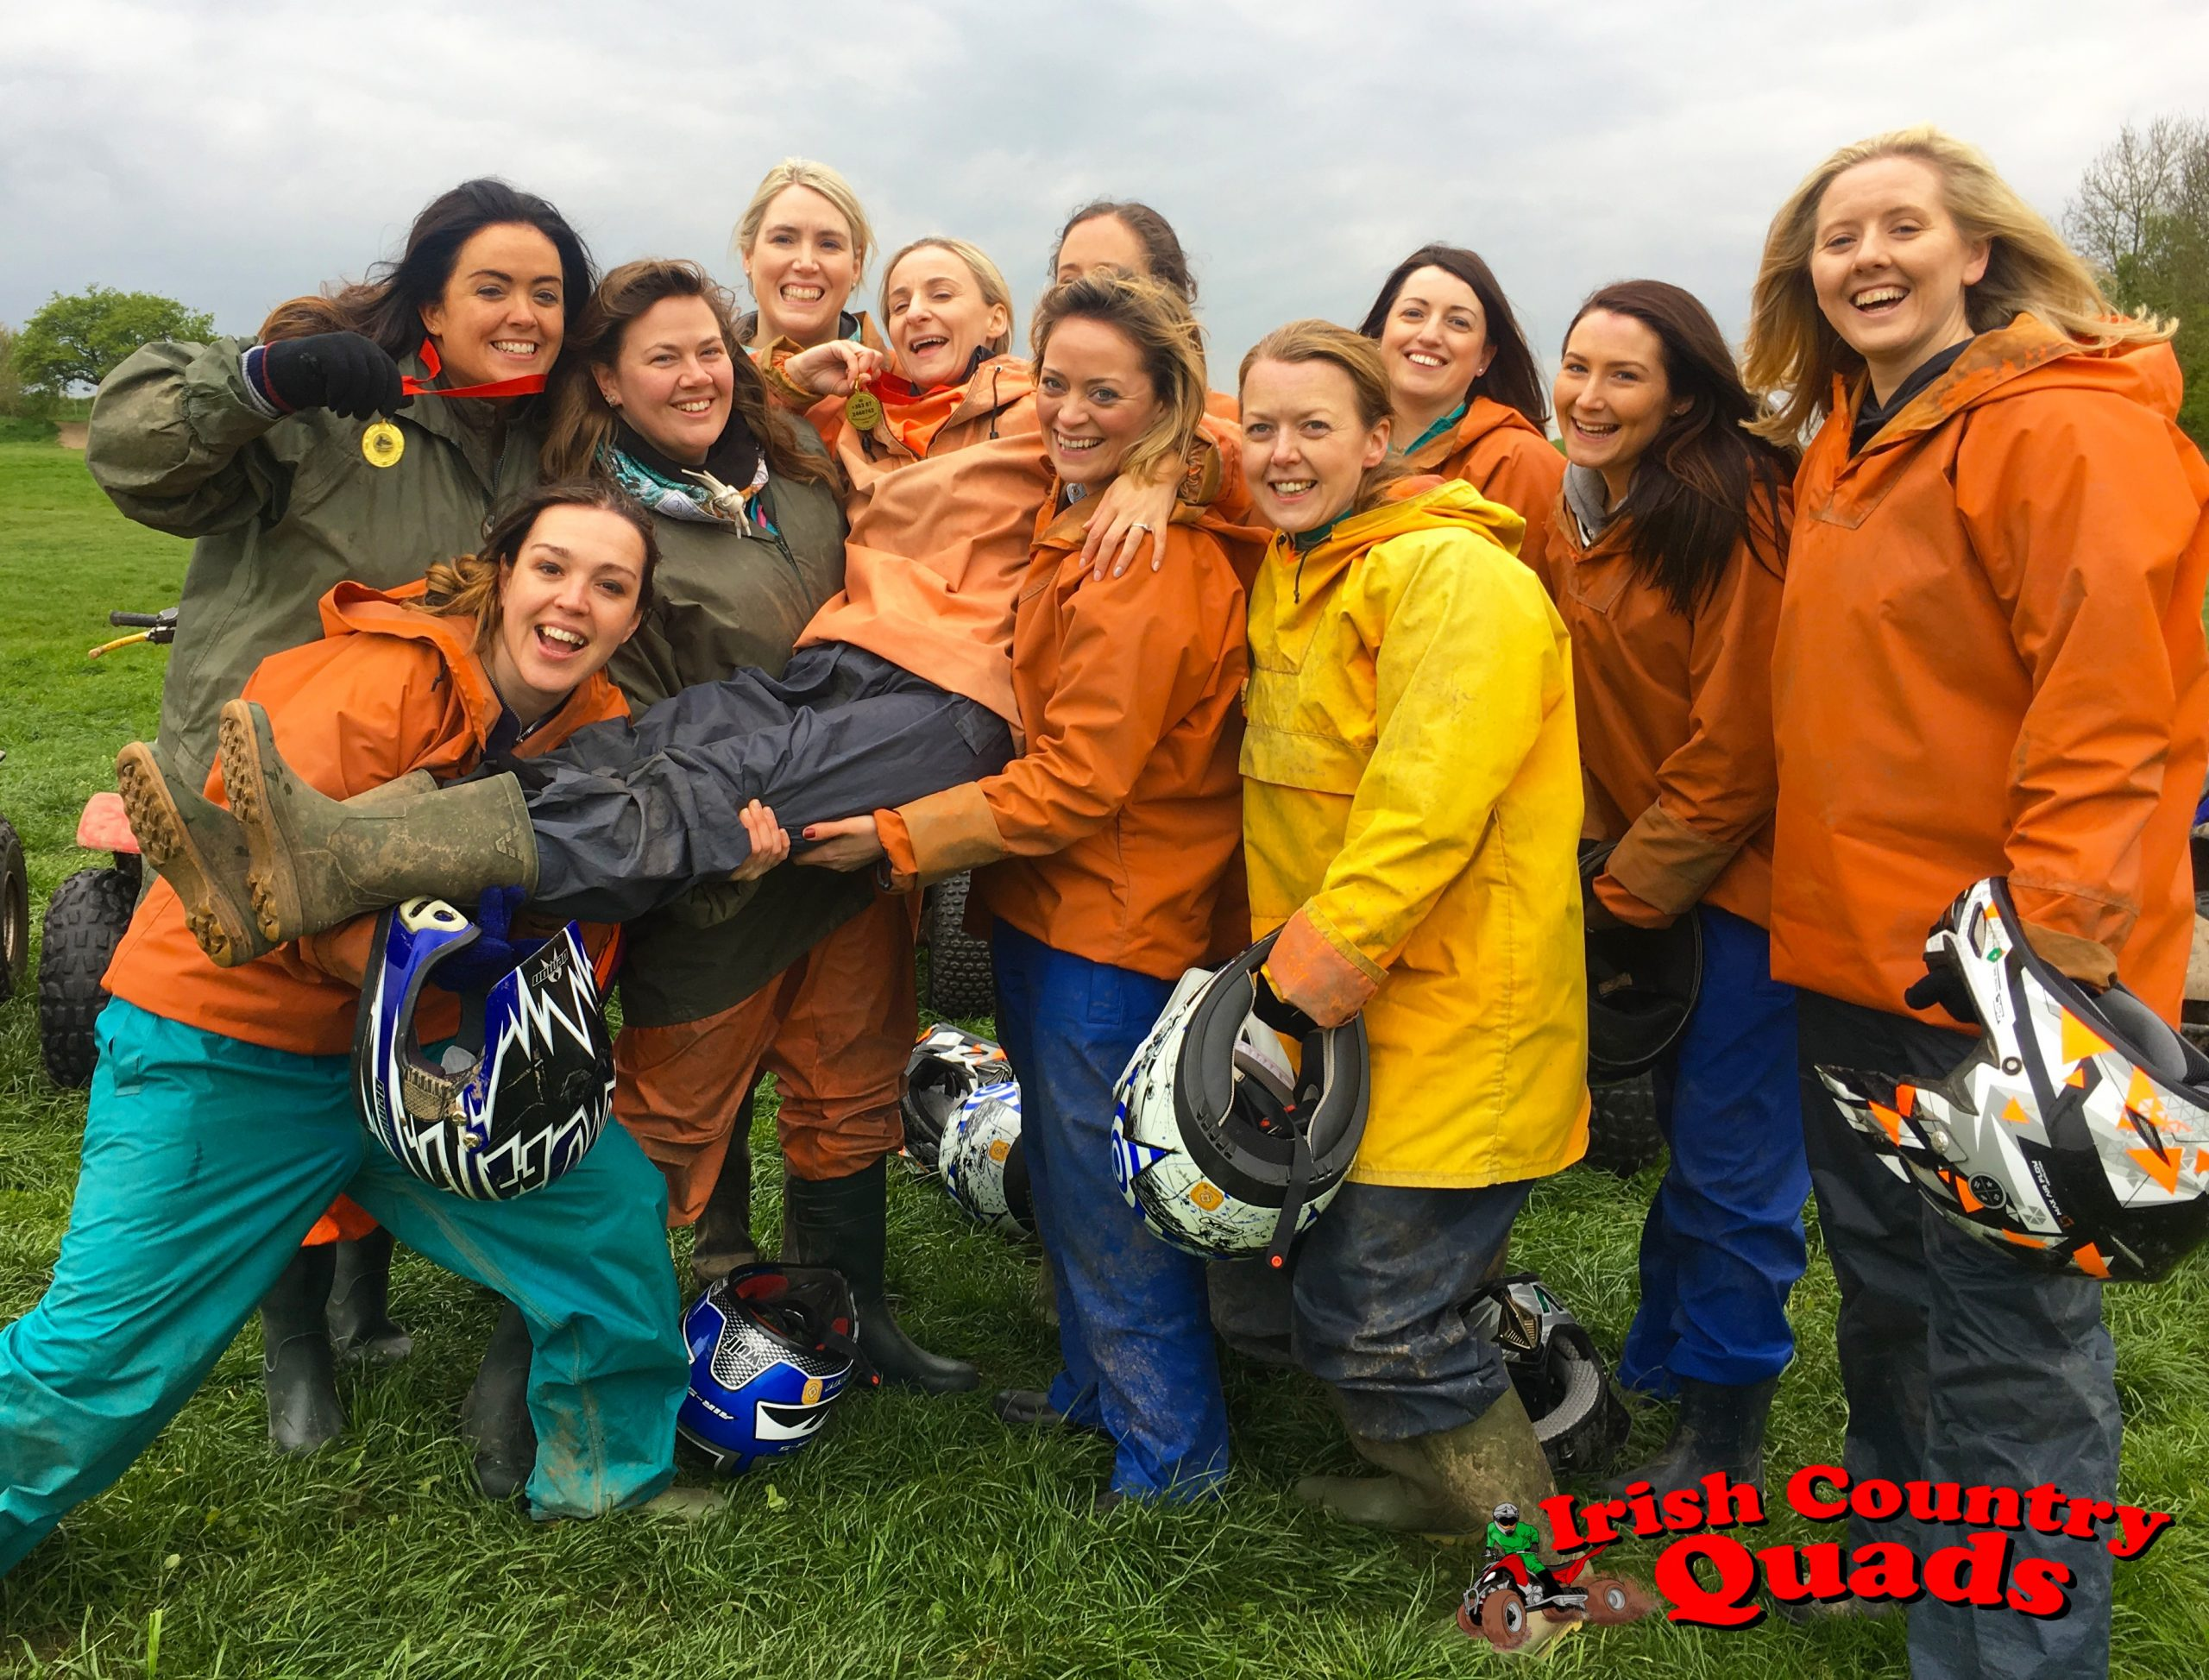 Irish Country Quads Adventure Activities quad bike track trail course hen party